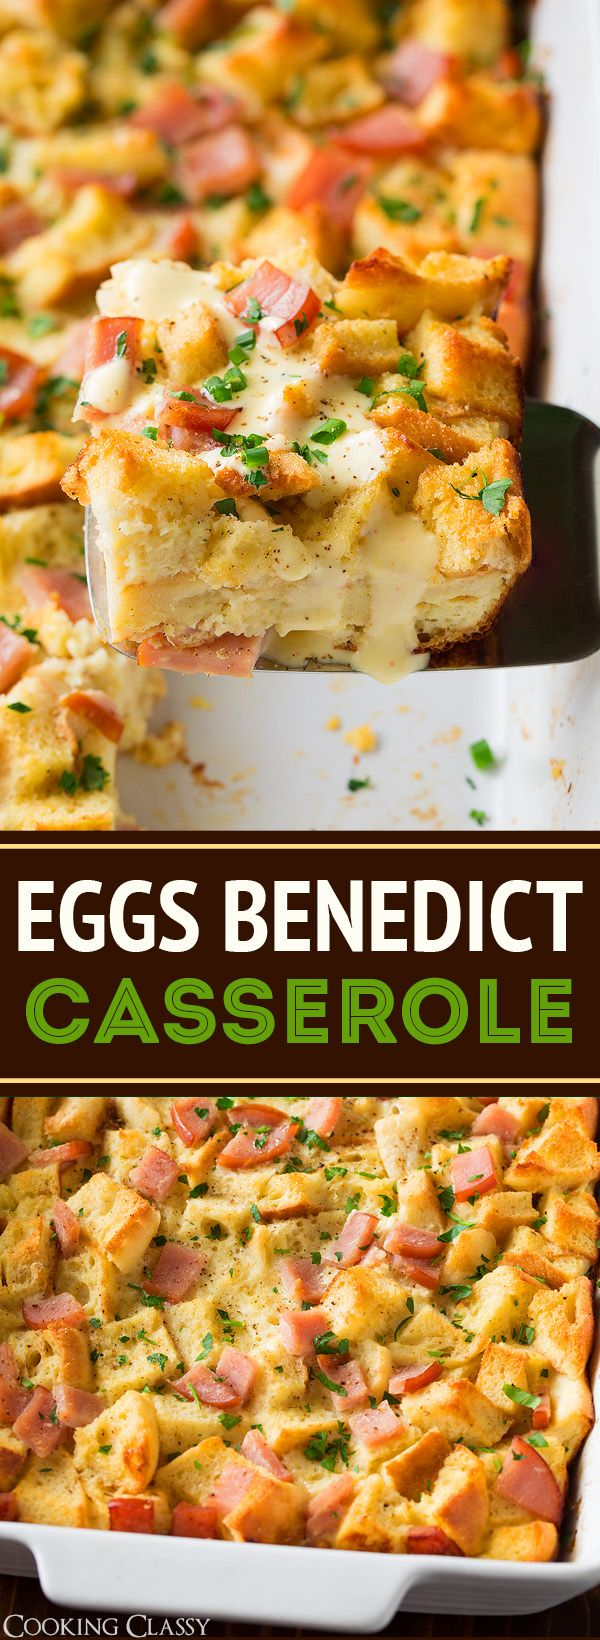 Overnight Eggs Benedict Casserole - Perfect holiday breakfast! Love this casserole!